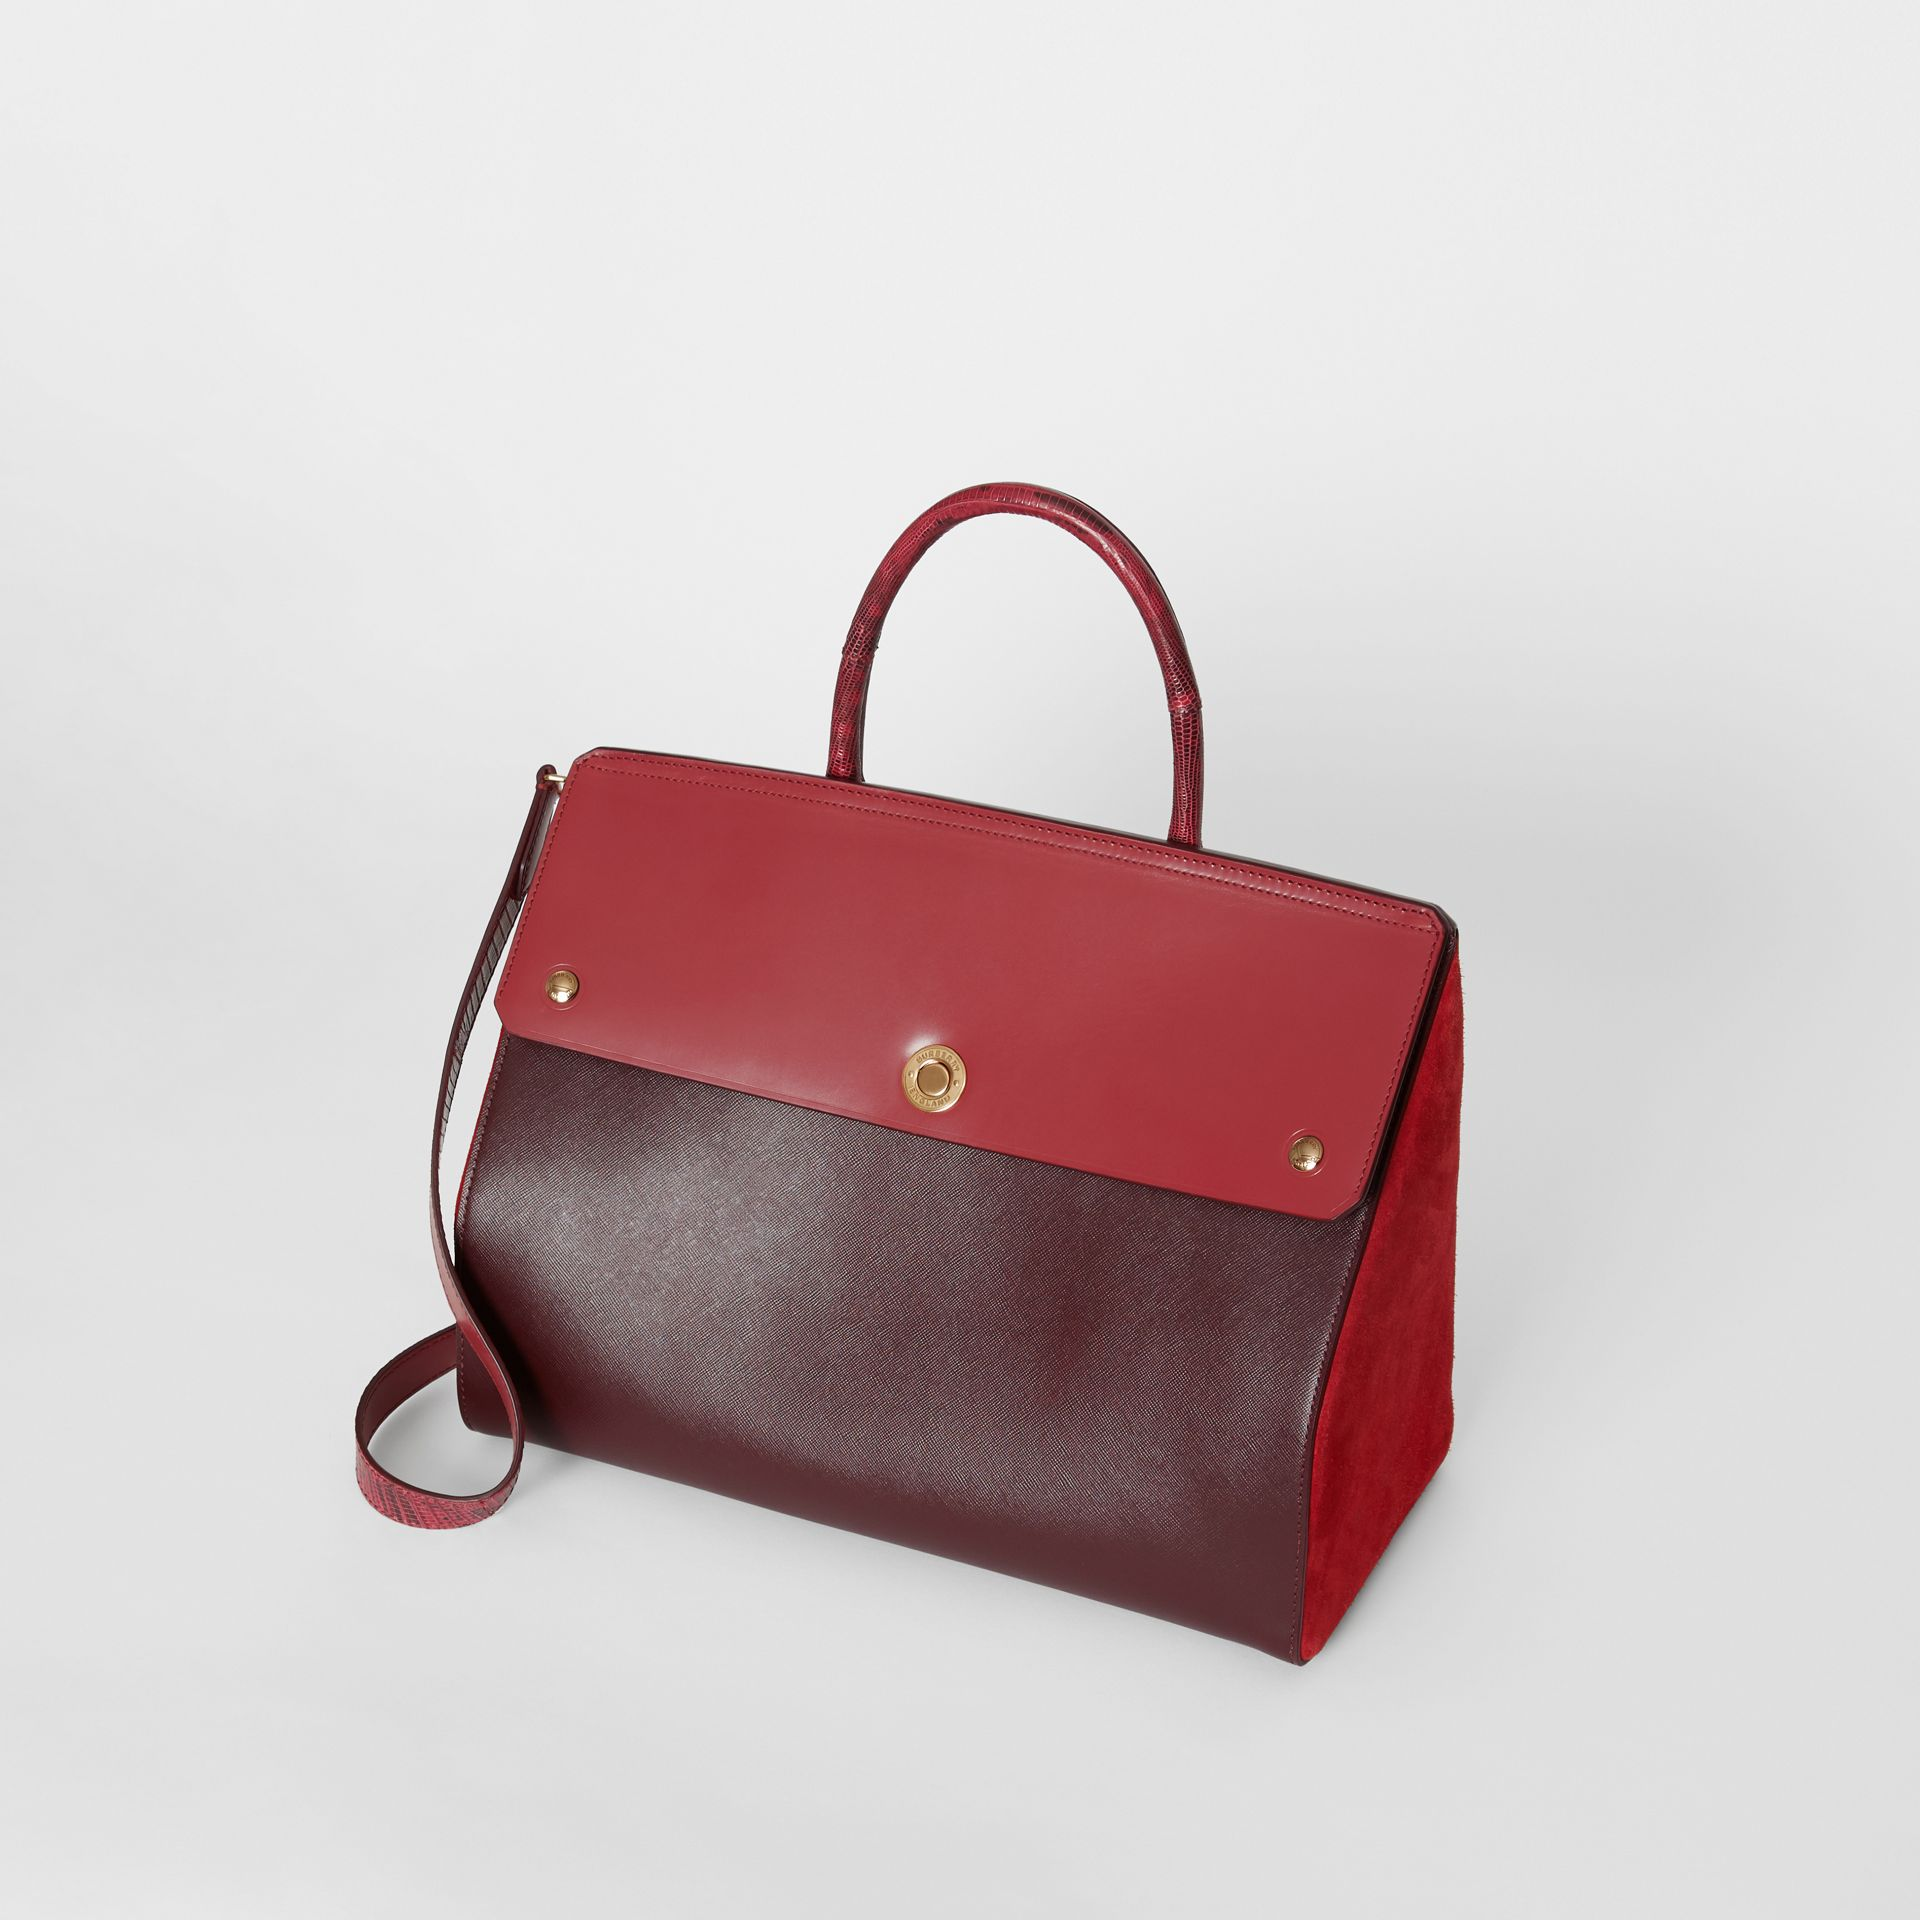 Medium Leather and Suede Elizabeth Bag in Crimson - Women | Burberry Australia - gallery image 3